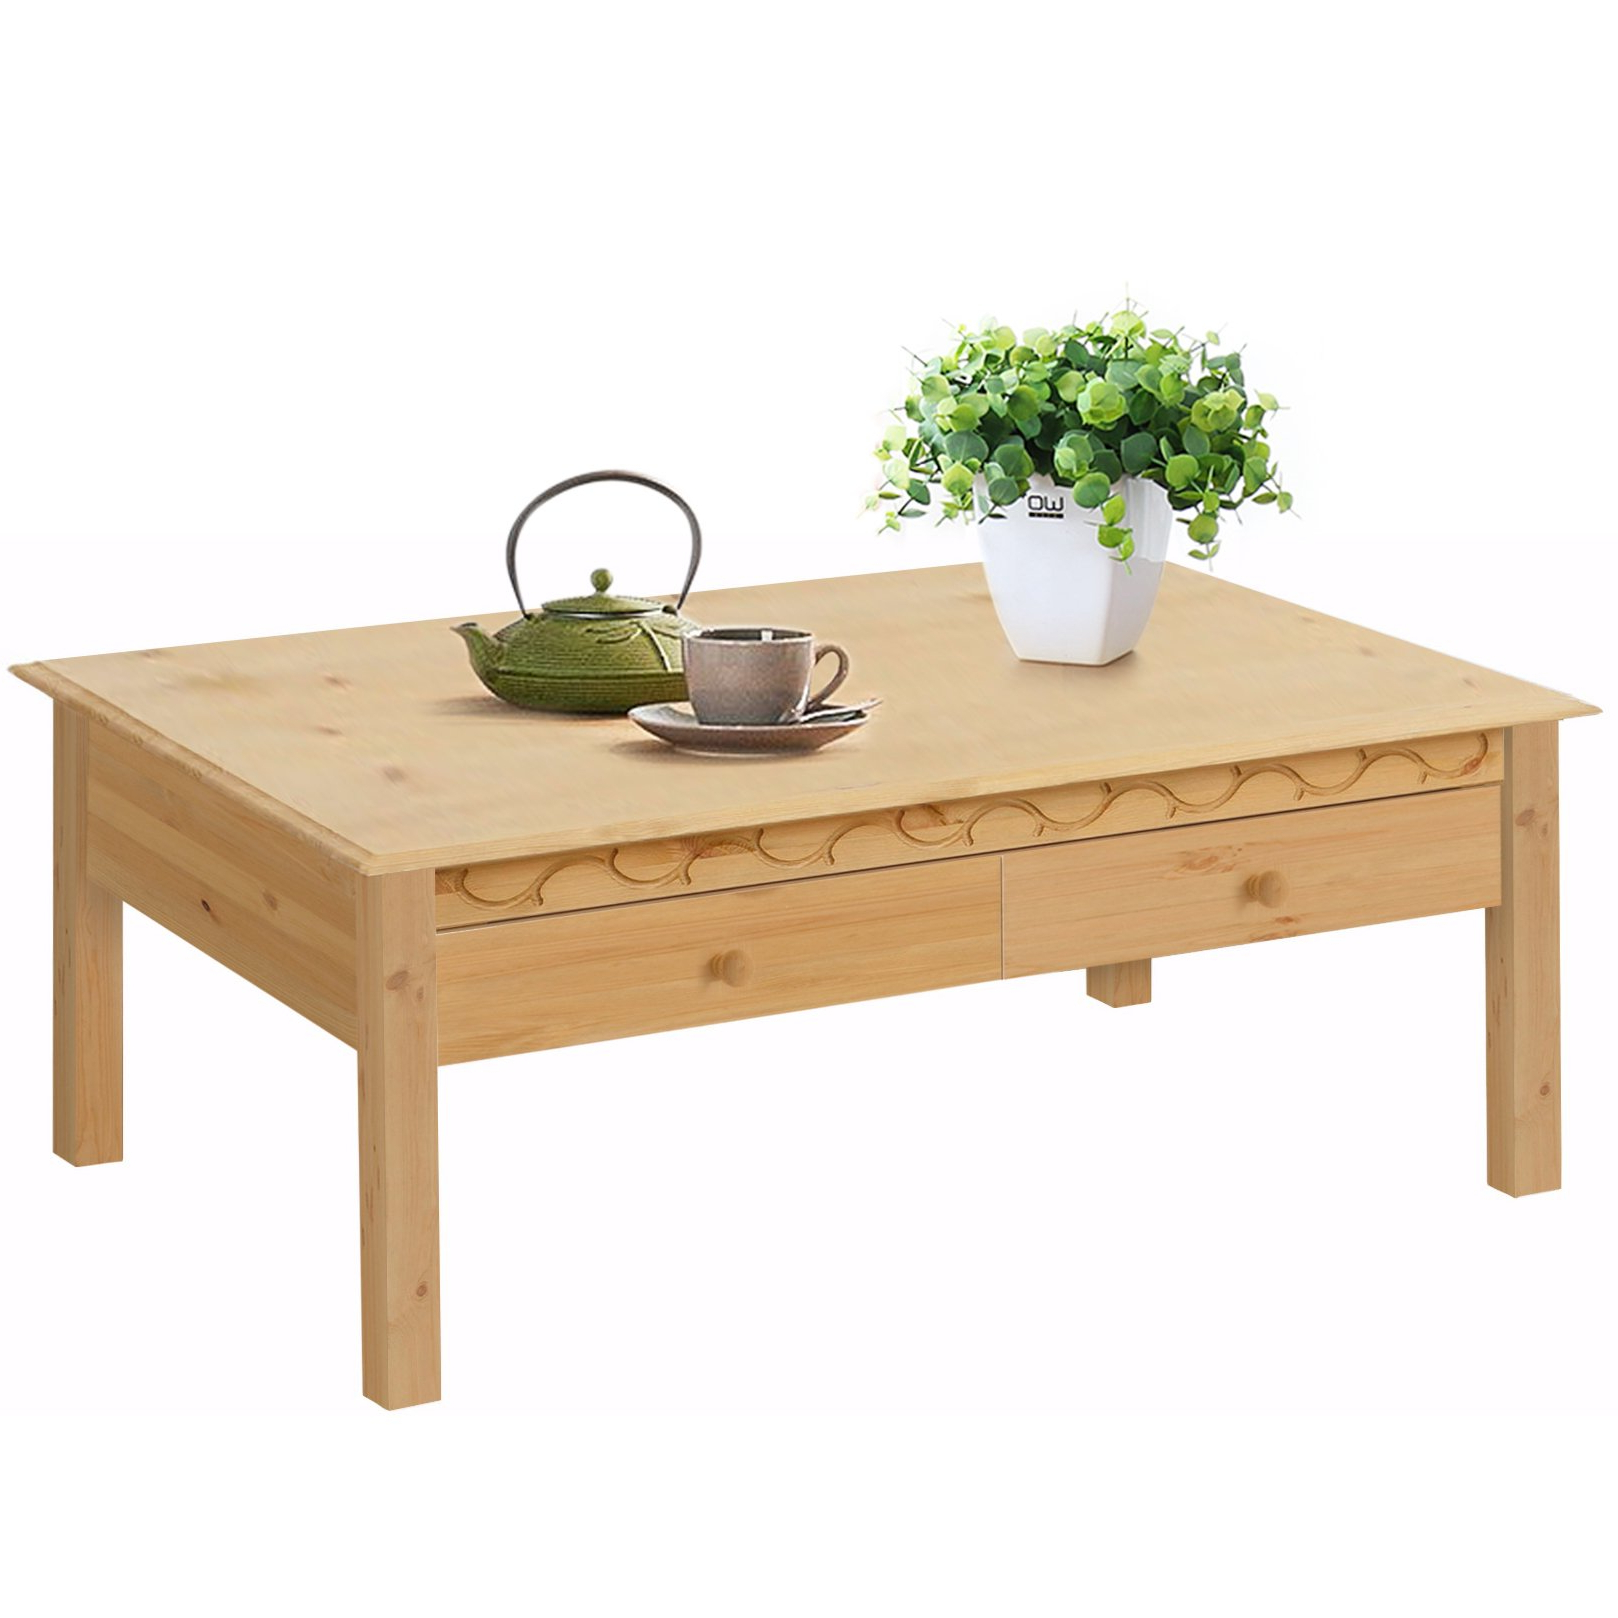 Natural Pine Coffee Tables With Most Recent Lando 1 Drawer Coffee Table, Solid Pine, Natural – Free Shipping (View 12 of 20)